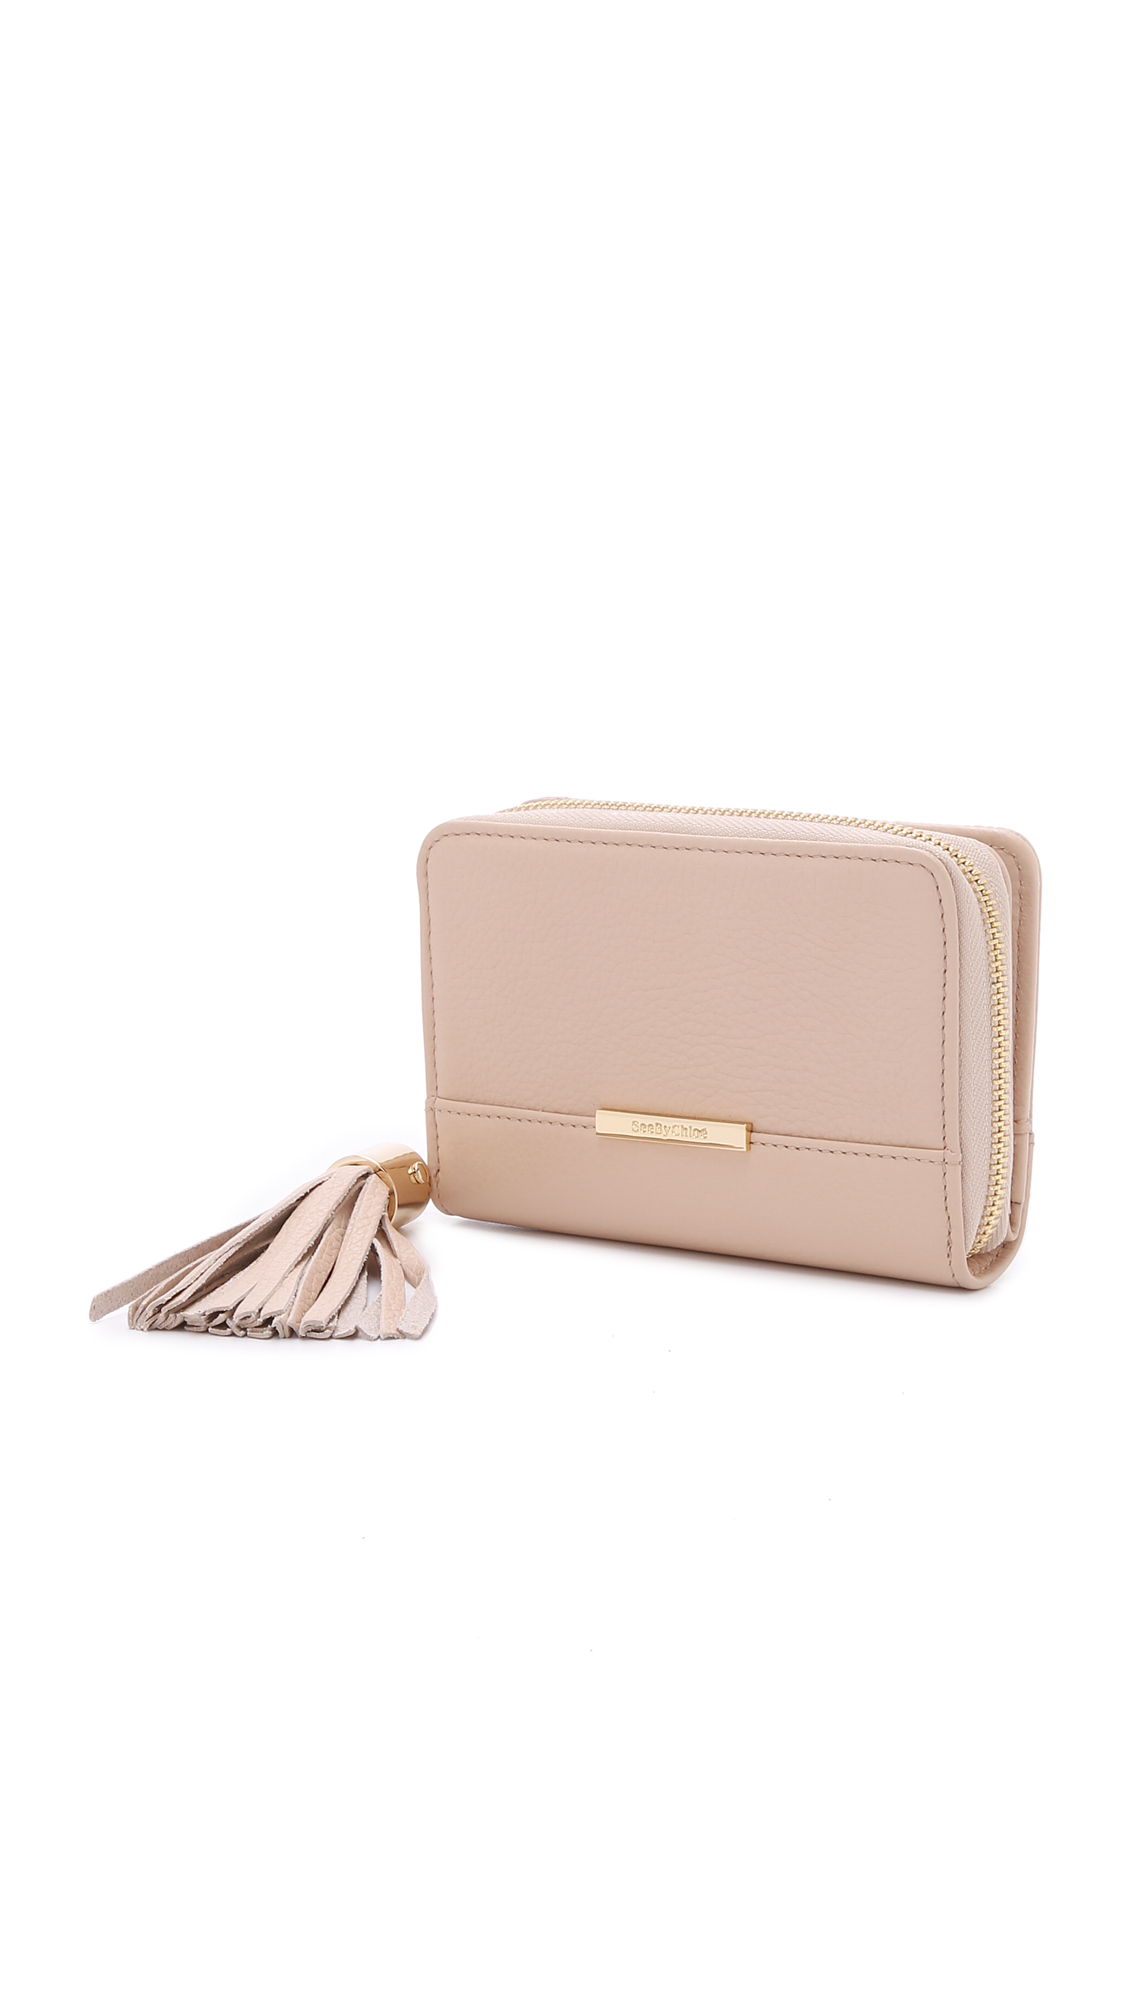 chole handbags - See by chlo�� Vicki Small Wallet - Plum in Beige (Nude) | Lyst